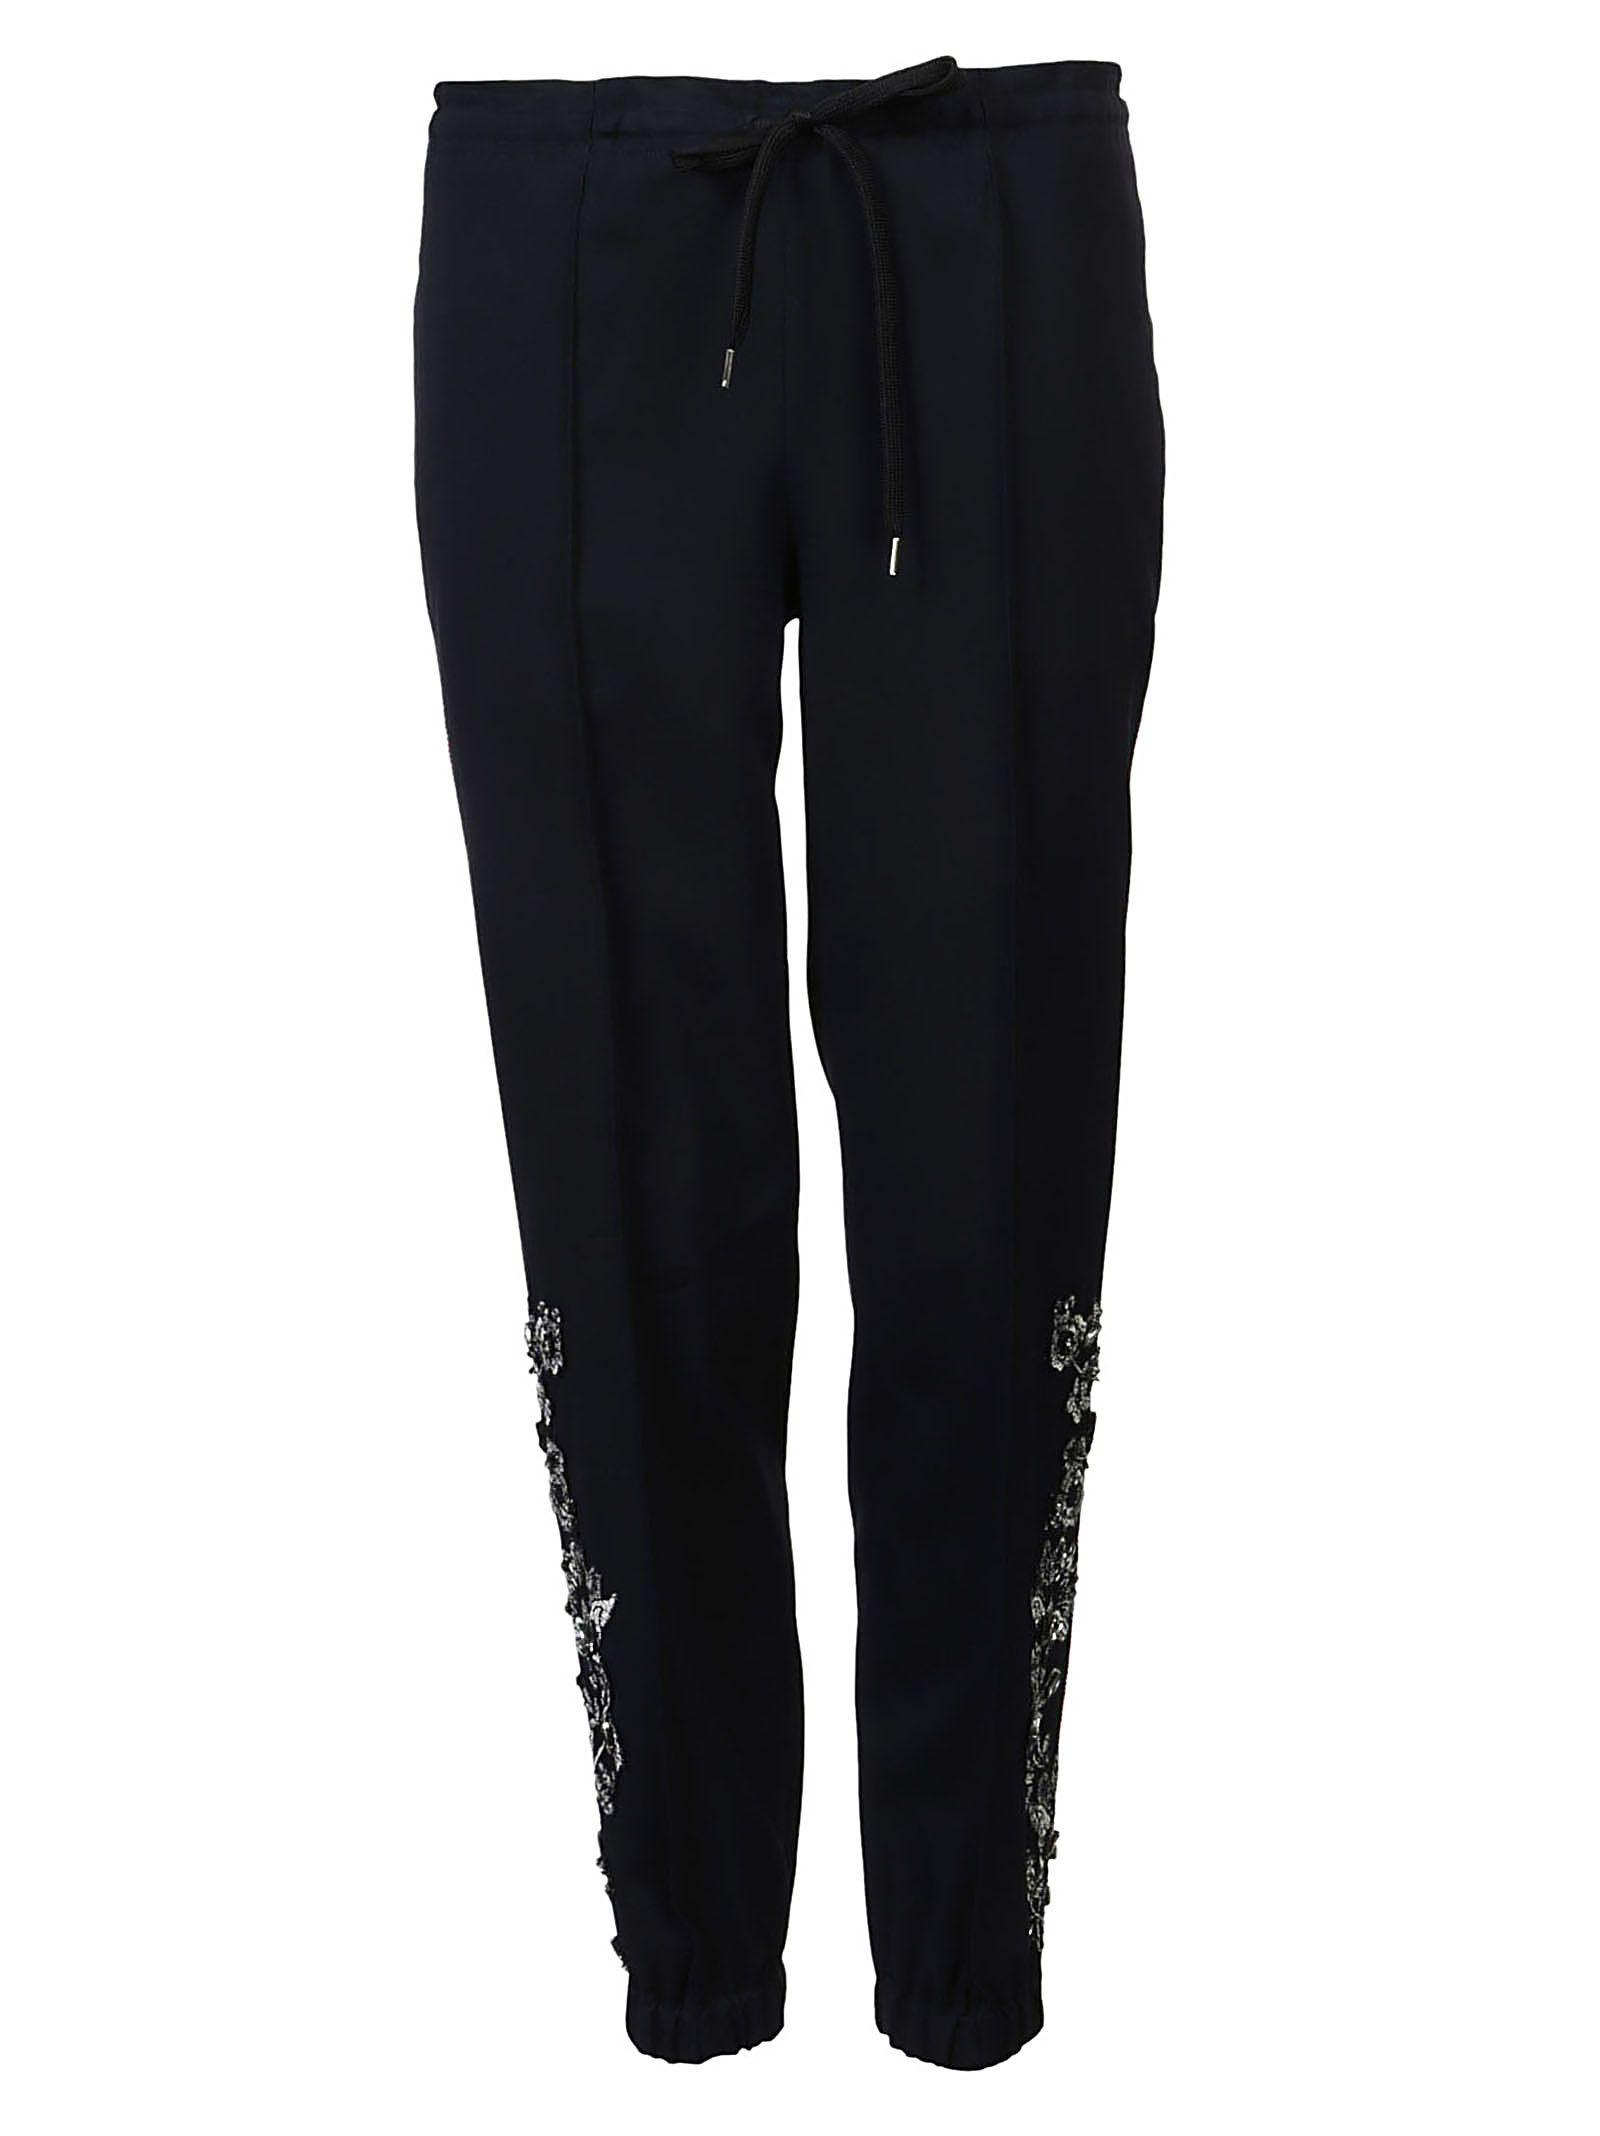 Ermanno Scervino Floral Embroidered Side Paneled Pants In Nero